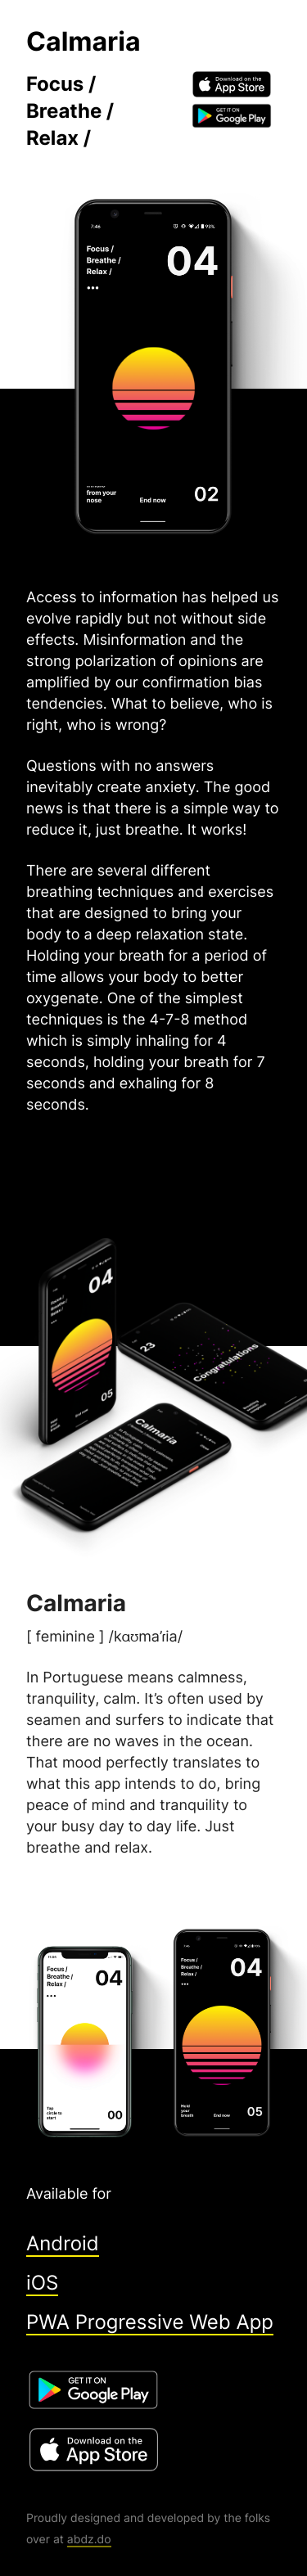 Example of Design for Internet & Telecom, Mobile & Wireless, Mobile Apps & Add-Ons, Mobile Landing Page by calmaria.app | Mobile Landing Page Design